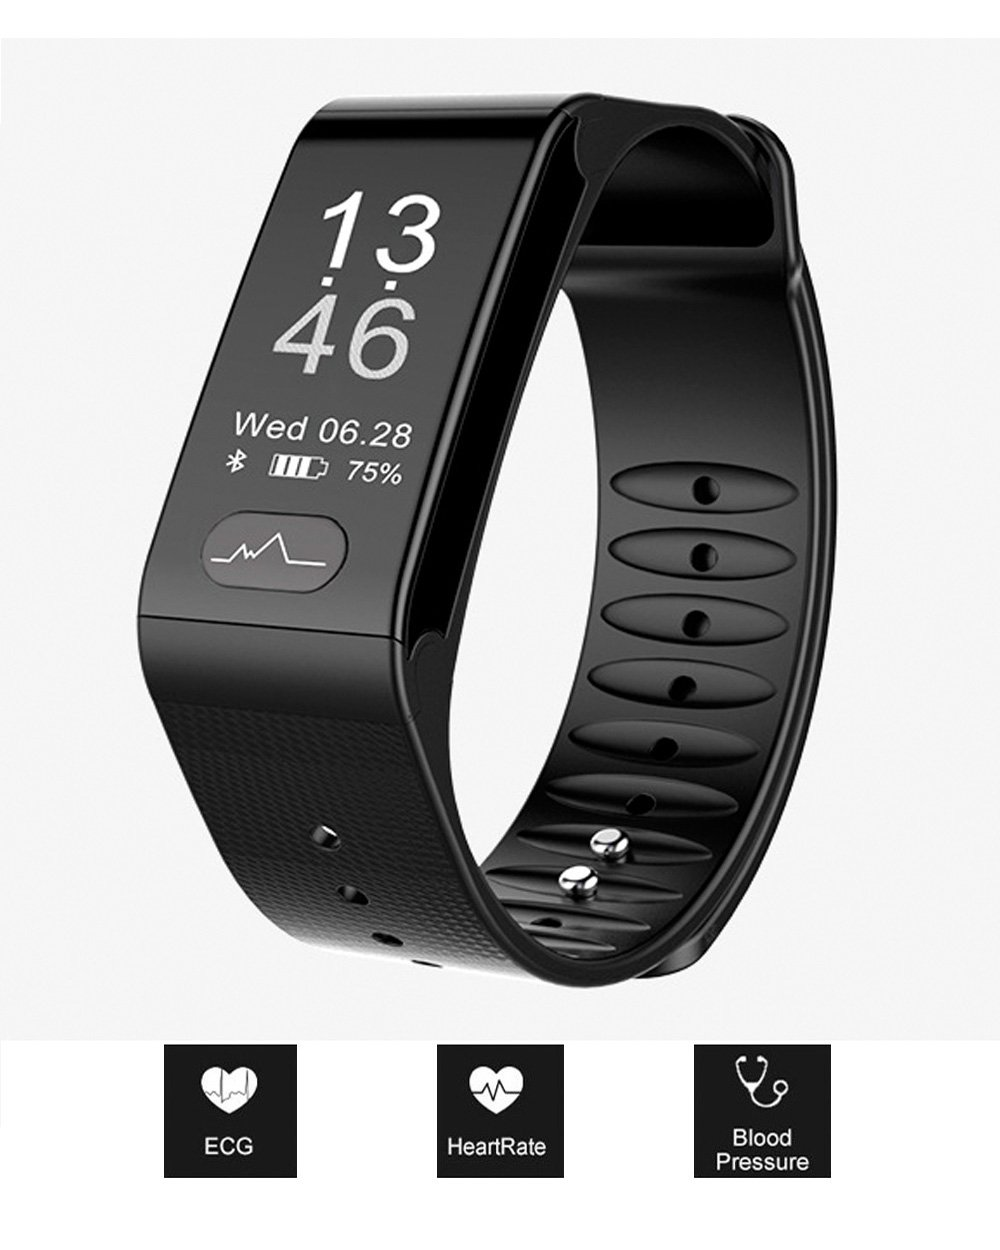 GETOKOK Fitness Tracker, Activity Tracker with ECG Heart Rate Blood Pressure Monitor, Bluetooth Waterproof Watch, Smart Band Bracelet Large Screen(0.96''), Health Assistant for Android or iOS